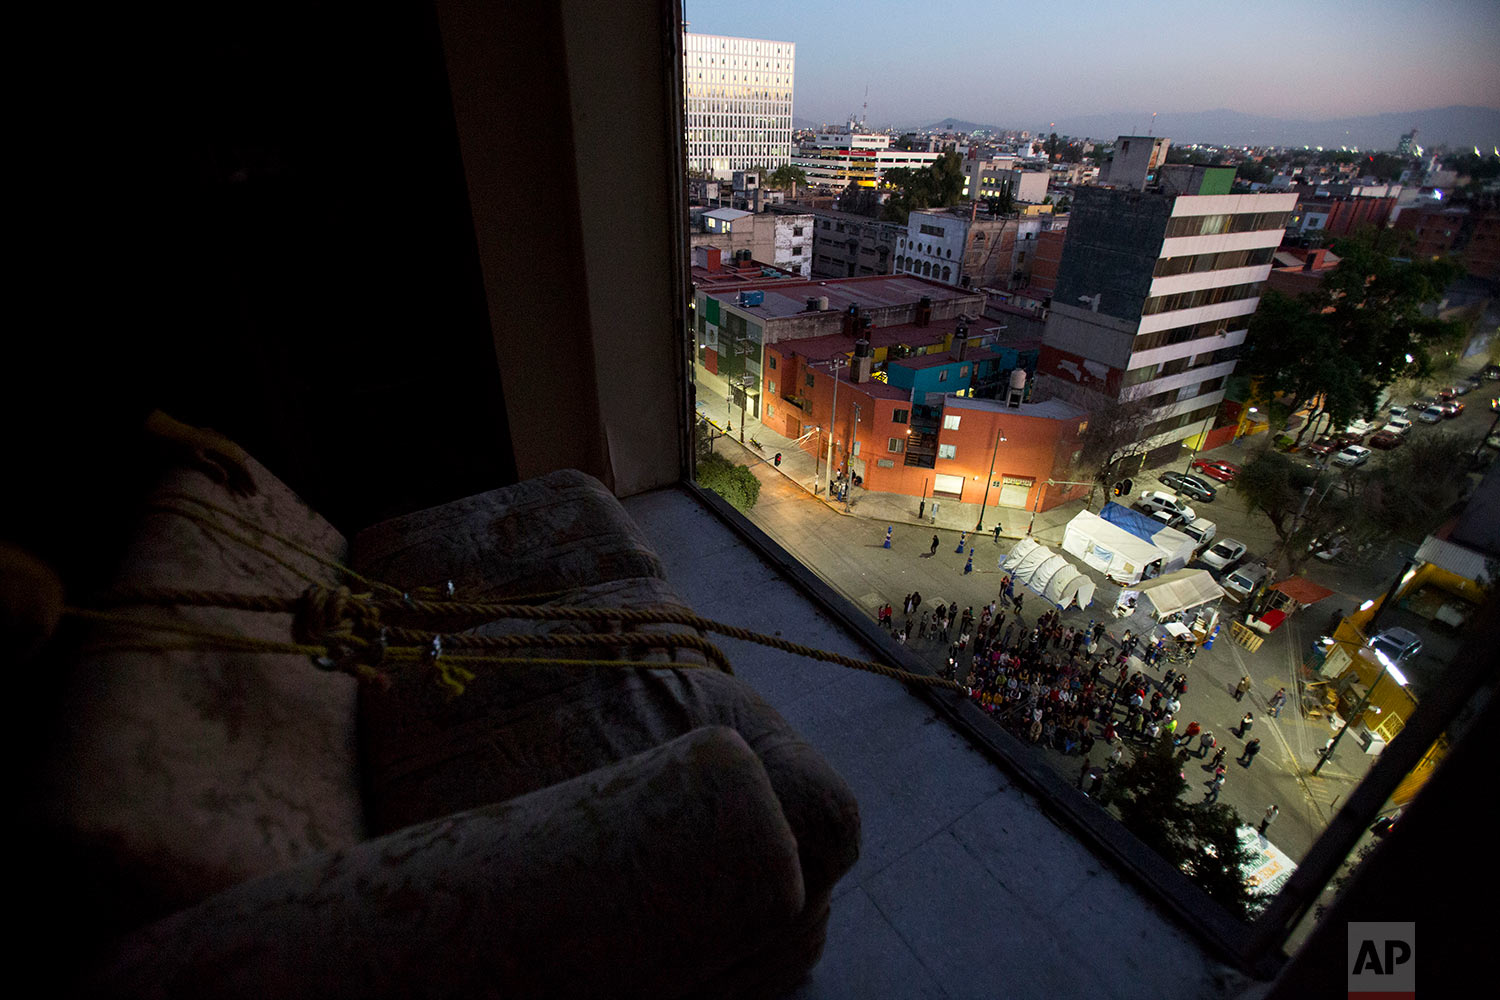 """Movers prepare to lower a couch out through the missing windows of an apartment inside the condemned """"Great Bear"""" building, the first within the complex to be demolished after the 2017 earthquake, in the Doctores neighborhood of Mexico City, Jan. 11, 2018.(AP Photo/Rebecca Blackwell)"""